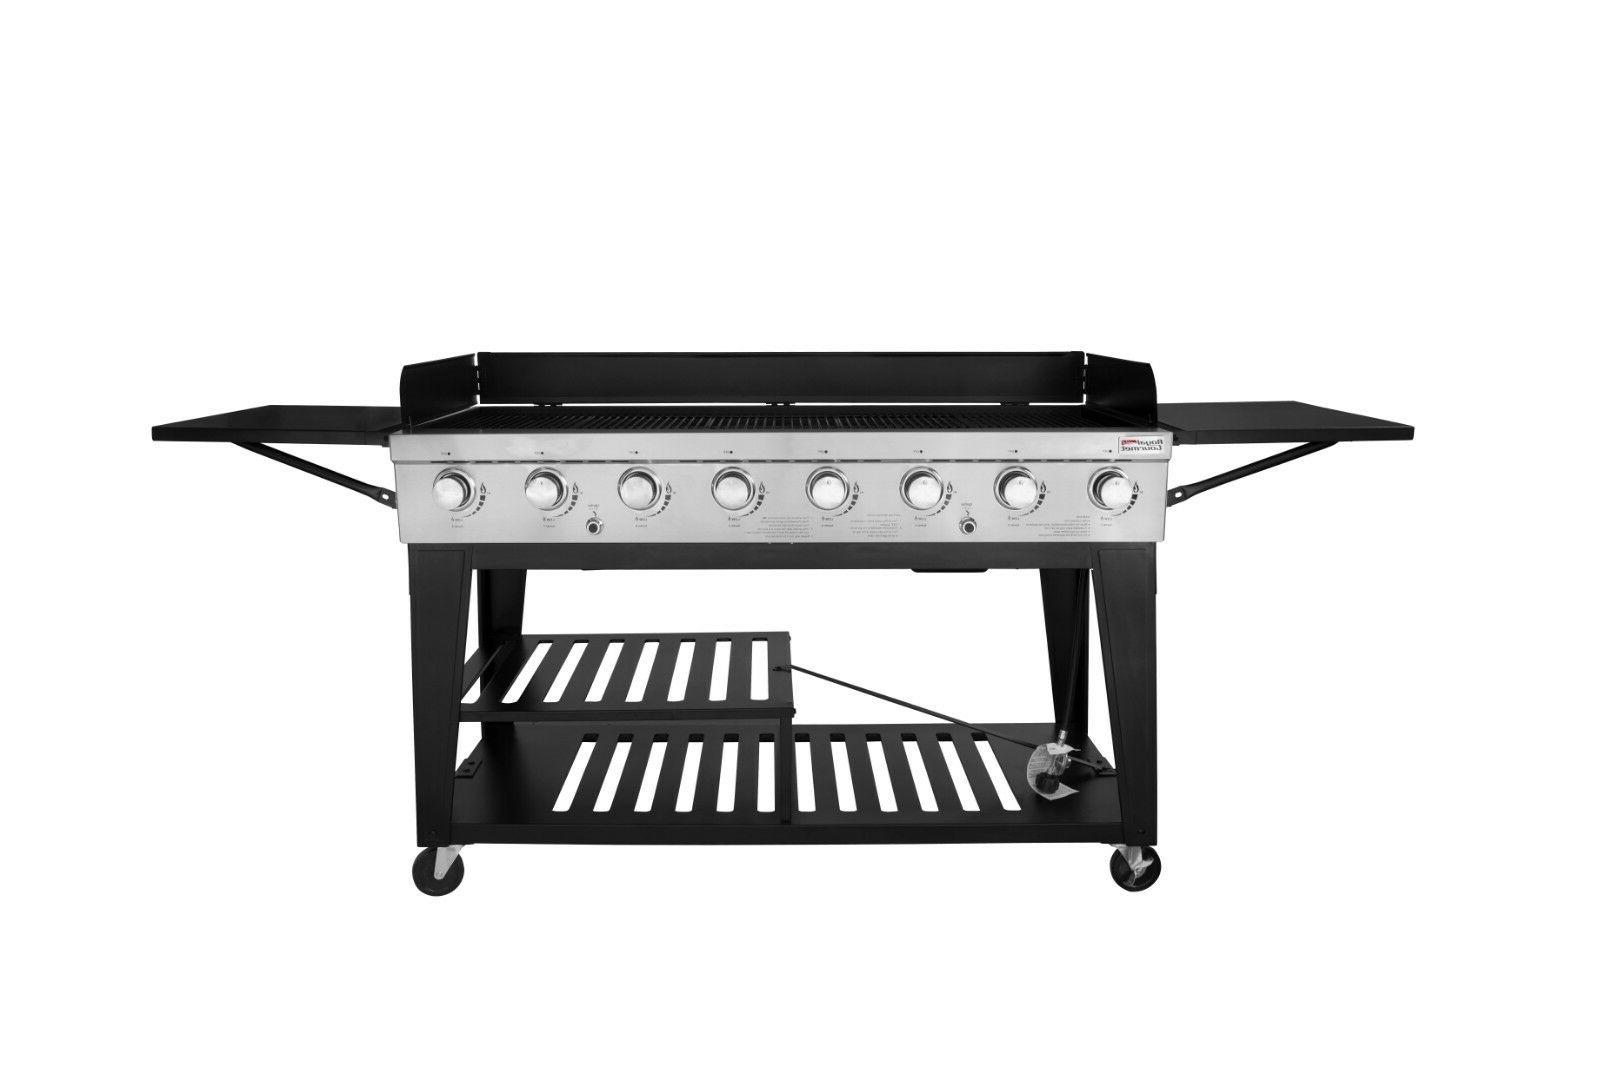 8 burner bbq propane gas grill stainless